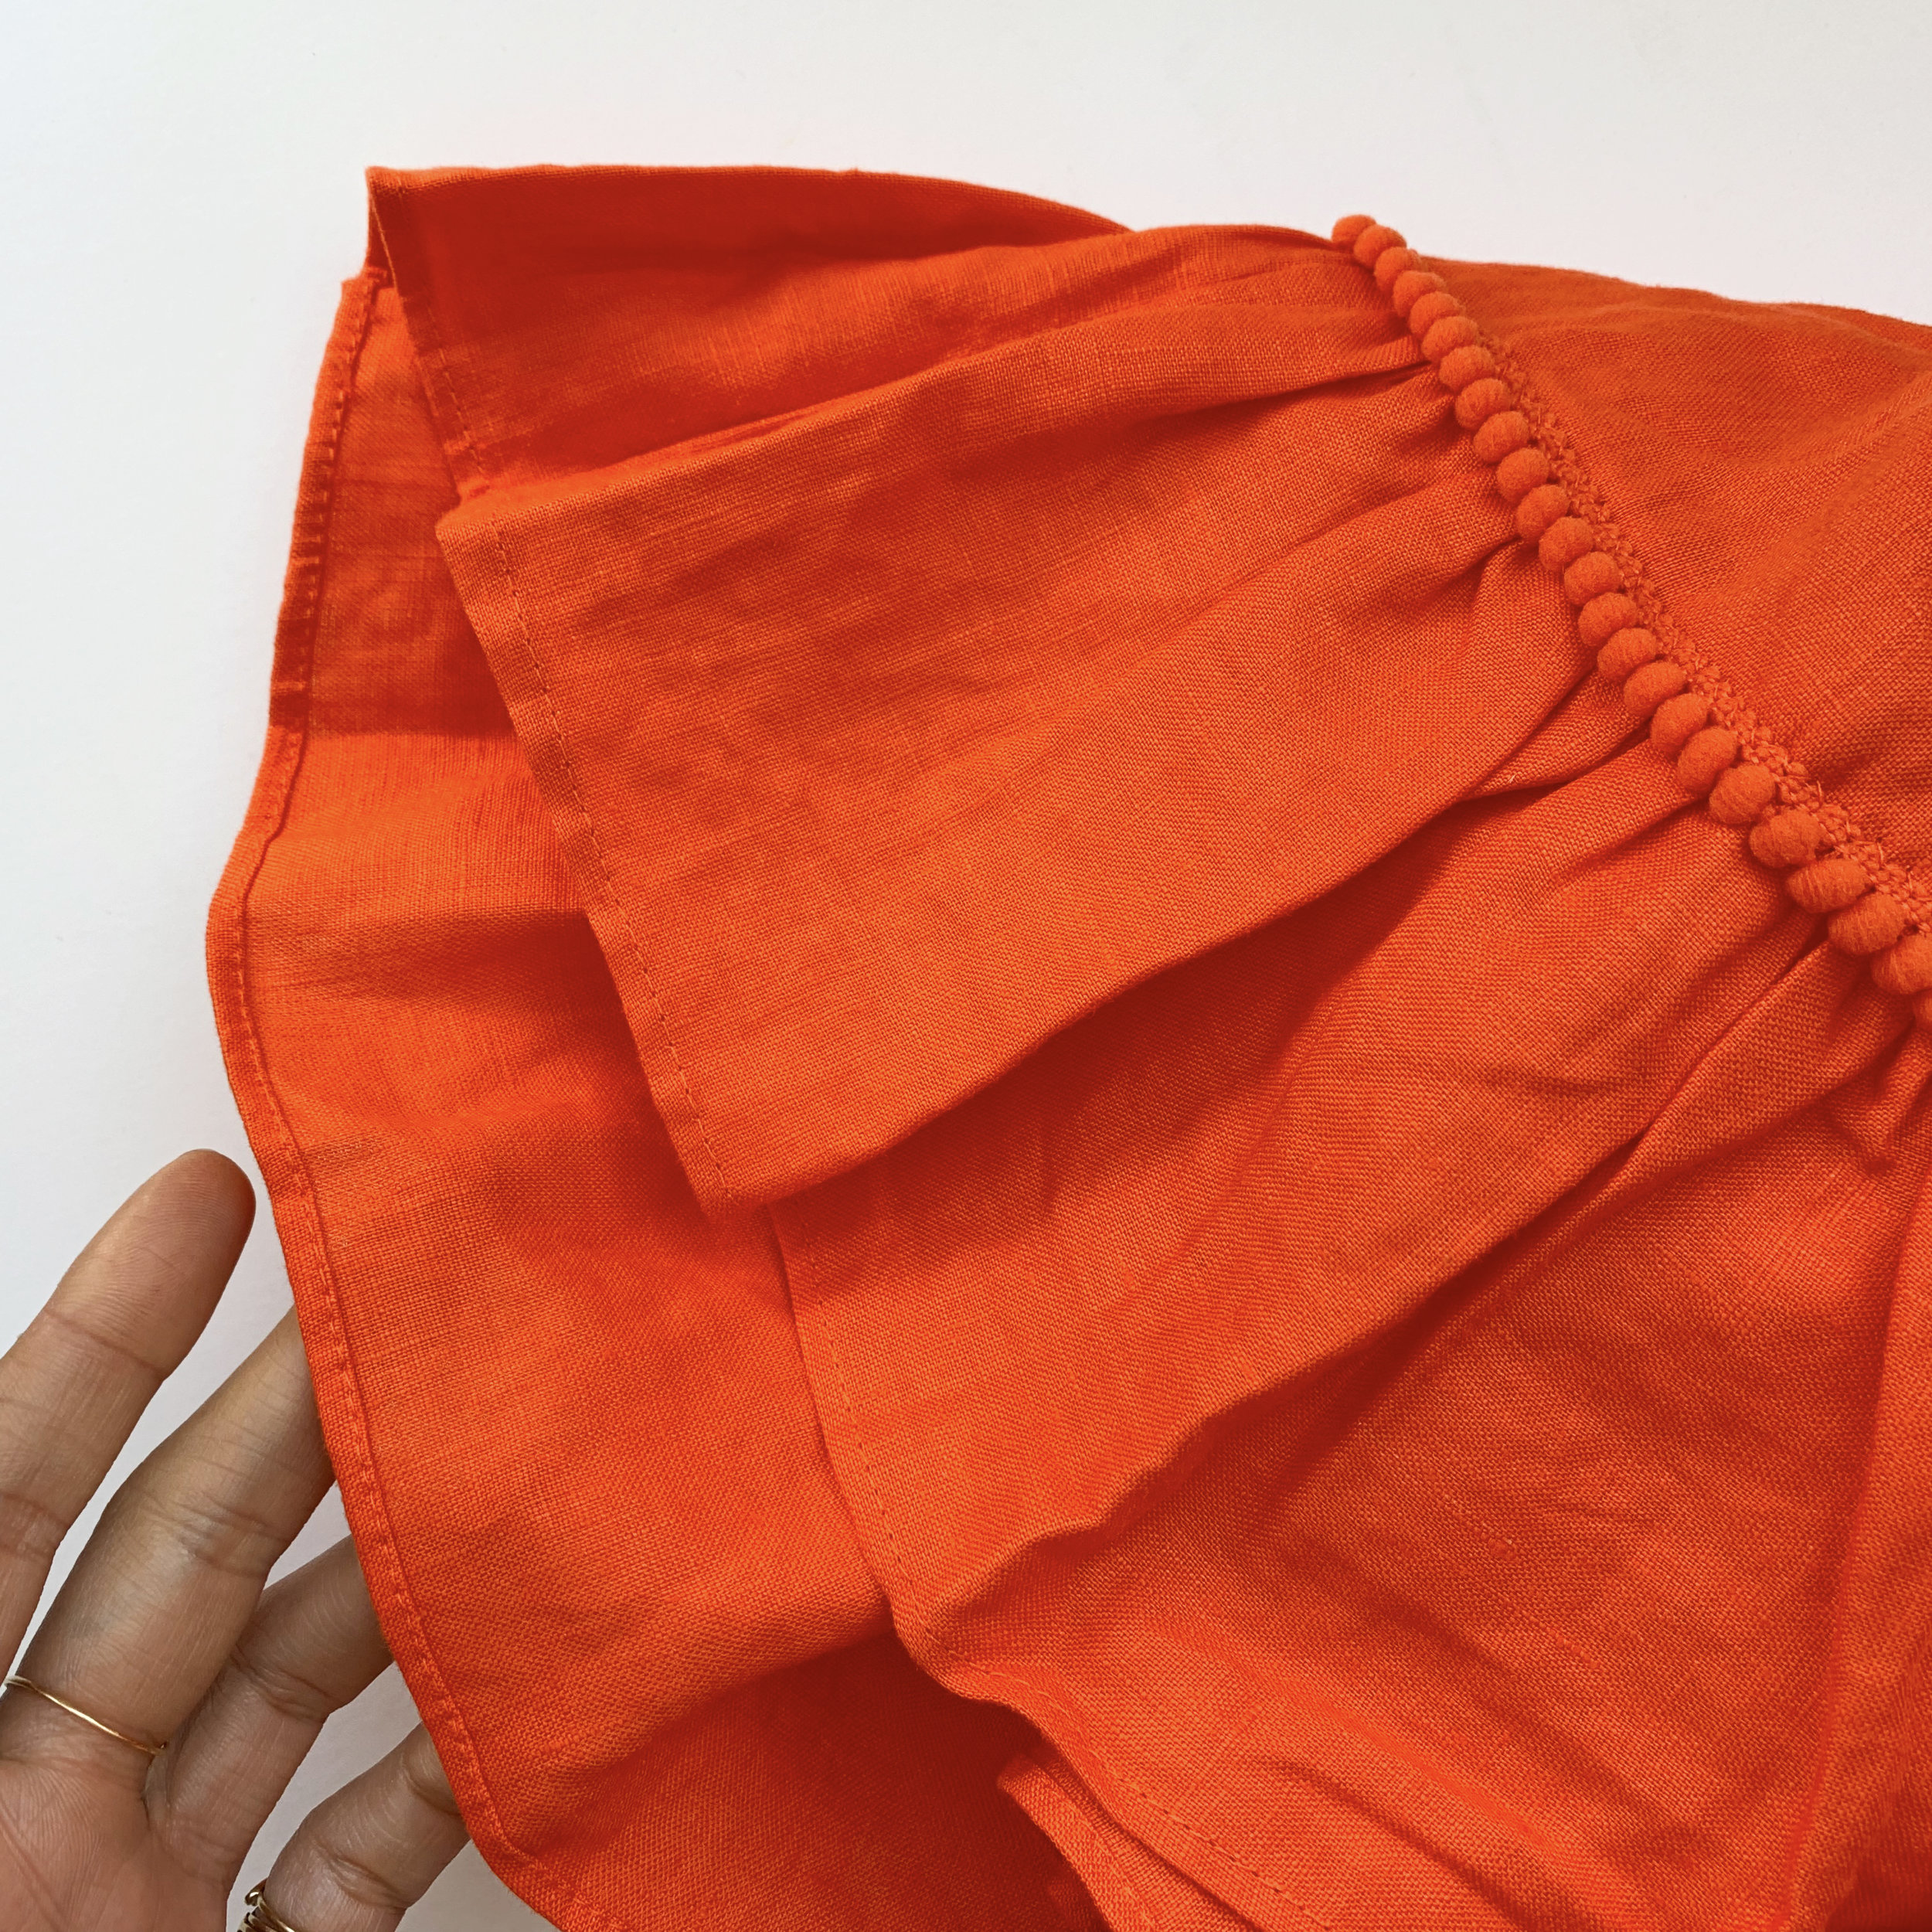 ORANGE DRESS narrow hem.jpg